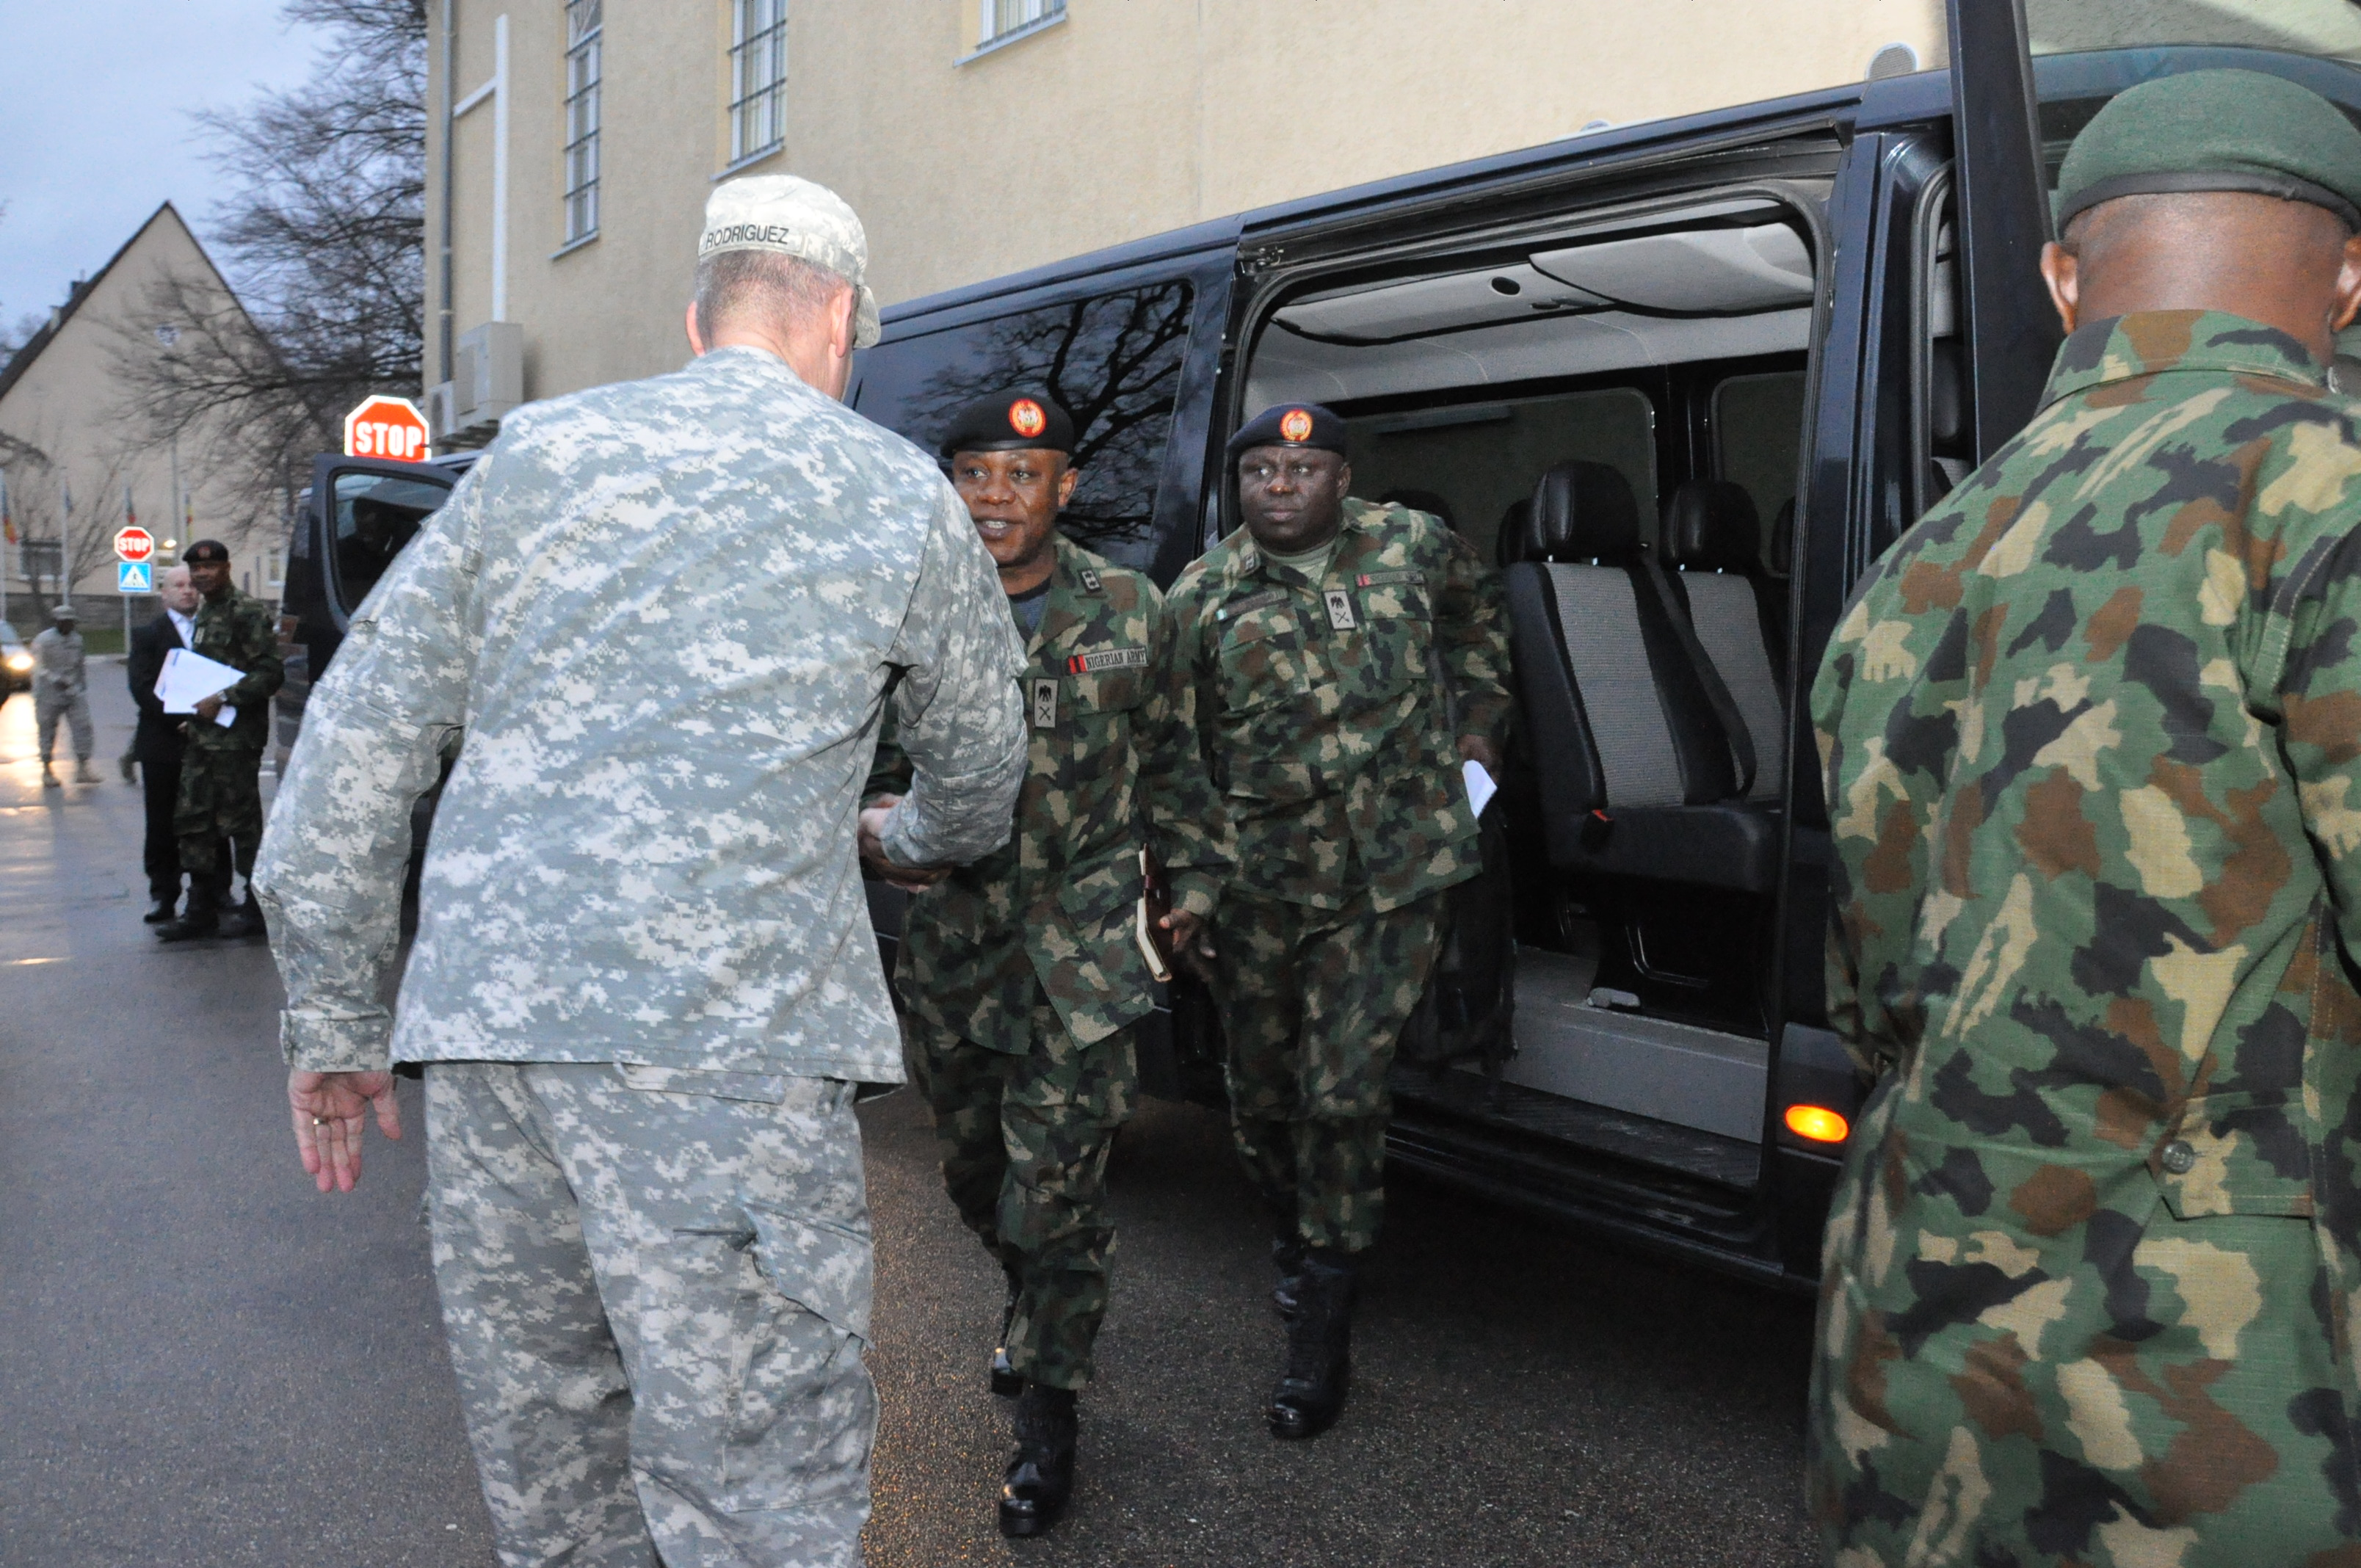 Gen. David Rodriguez, commander, U.S. Africa Command greets senior Nigerian officers as they arrive for a two-day meeting with senior AFRICOM commanders and leaders. The purpose of the visit was to reinforce the importance of a strong US-Nigeria security cooperation relationship, with topics focused on ways to counter terrorism, joint operations, logistics and maritime security in the Gulf of Guinea, Feb. 9, 2016, U.S. Army Garrison Stuttgart, Germany. (Photo by Brenda Law, U.S. Africa Command Public Affairs/RELEASED)